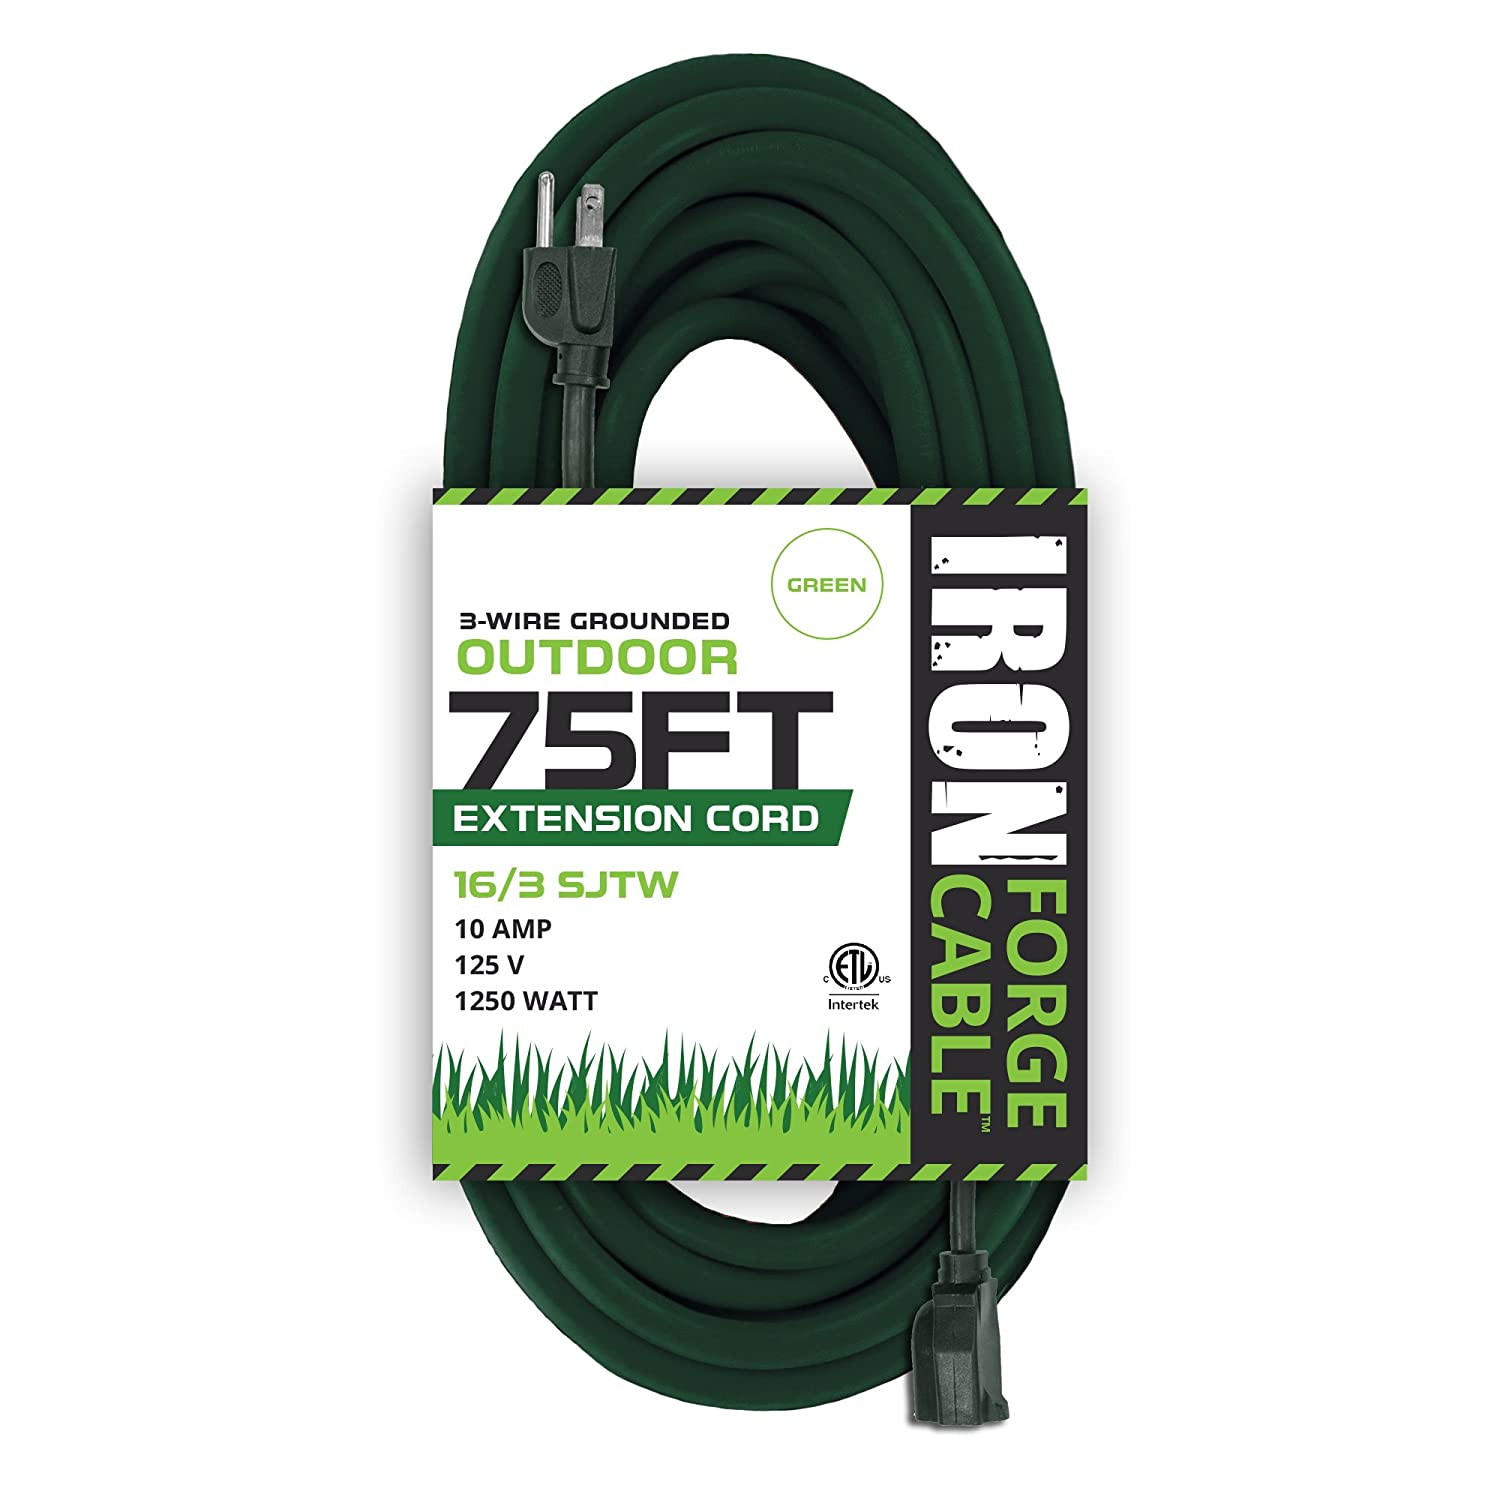 75 Foot Outdoor Extension Cord - 16/3 SJTW Heavy Duty Green Extension Cable with 3 Prong Grounded Plug for Safety - Great for Garden and Major Appliances Iron Forge Cables IFC-163G75